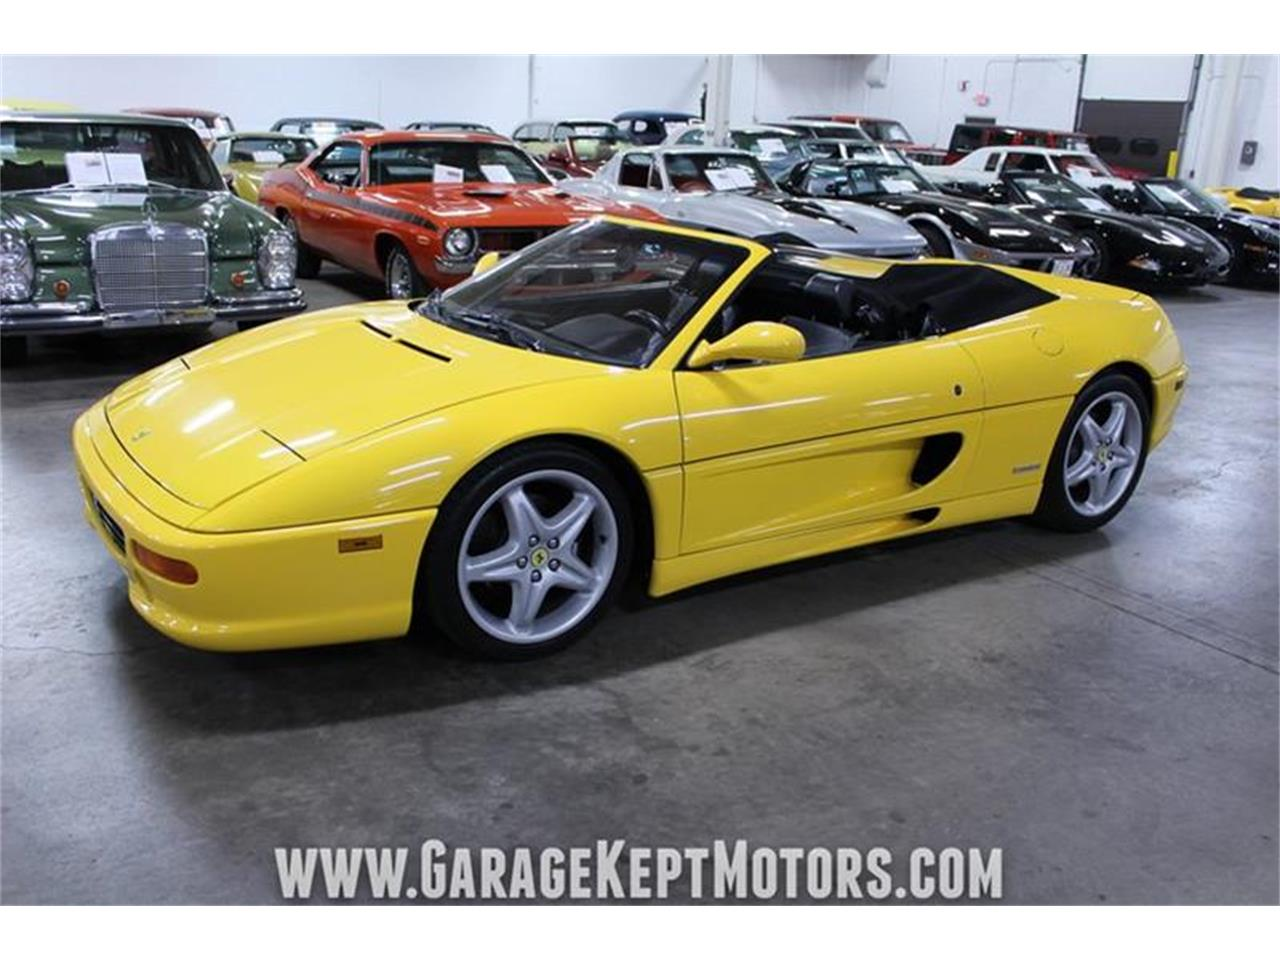 Large Picture of '97 Ferrari F355 located in Michigan - $59,900.00 - PWXC